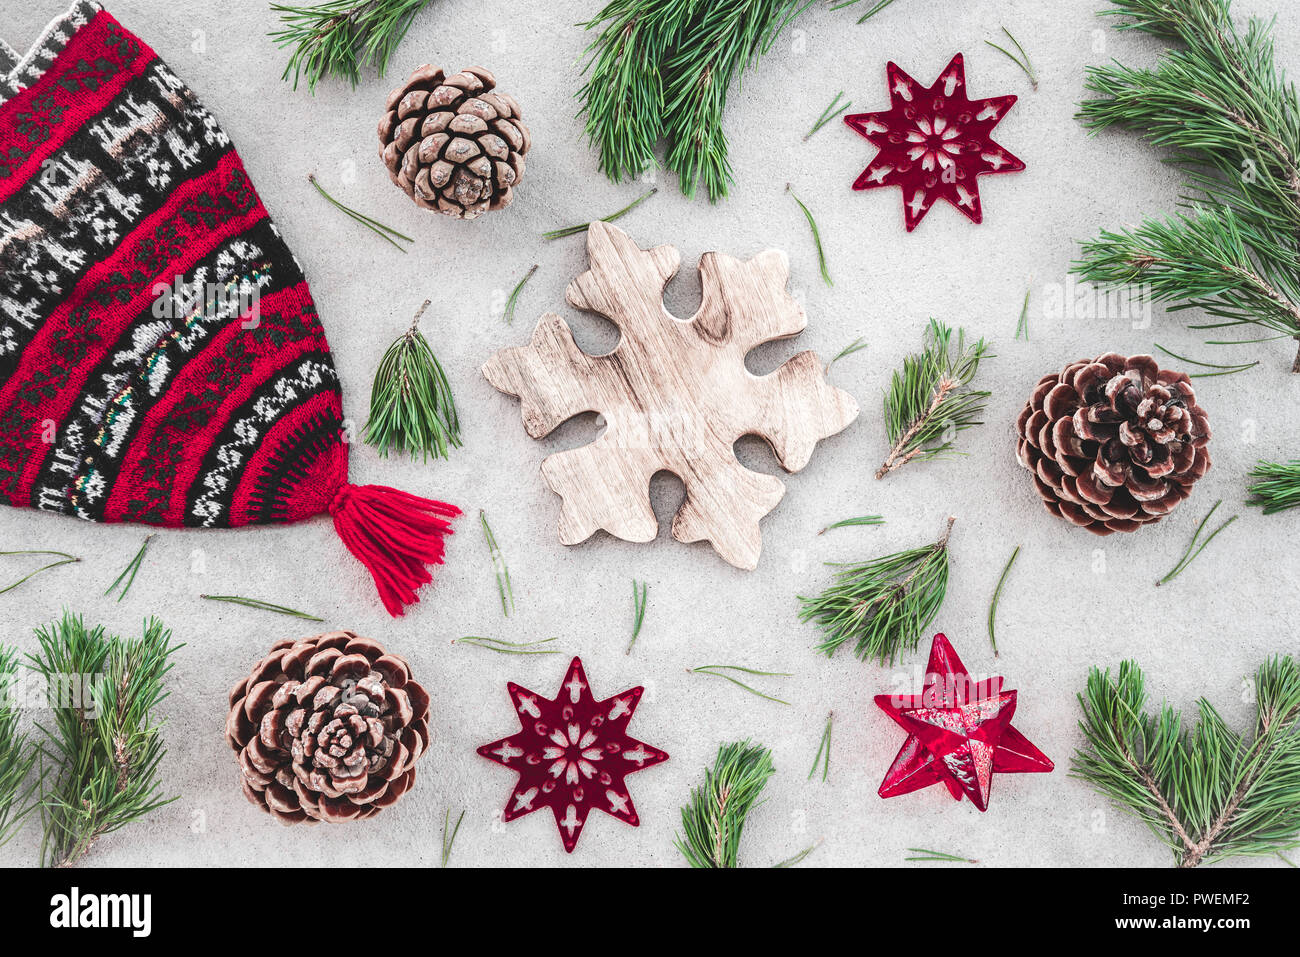 Nordic style Christmas decor. Red knitted winter hat, green pine branches, cones and stars, on concrete background. Stock Photo